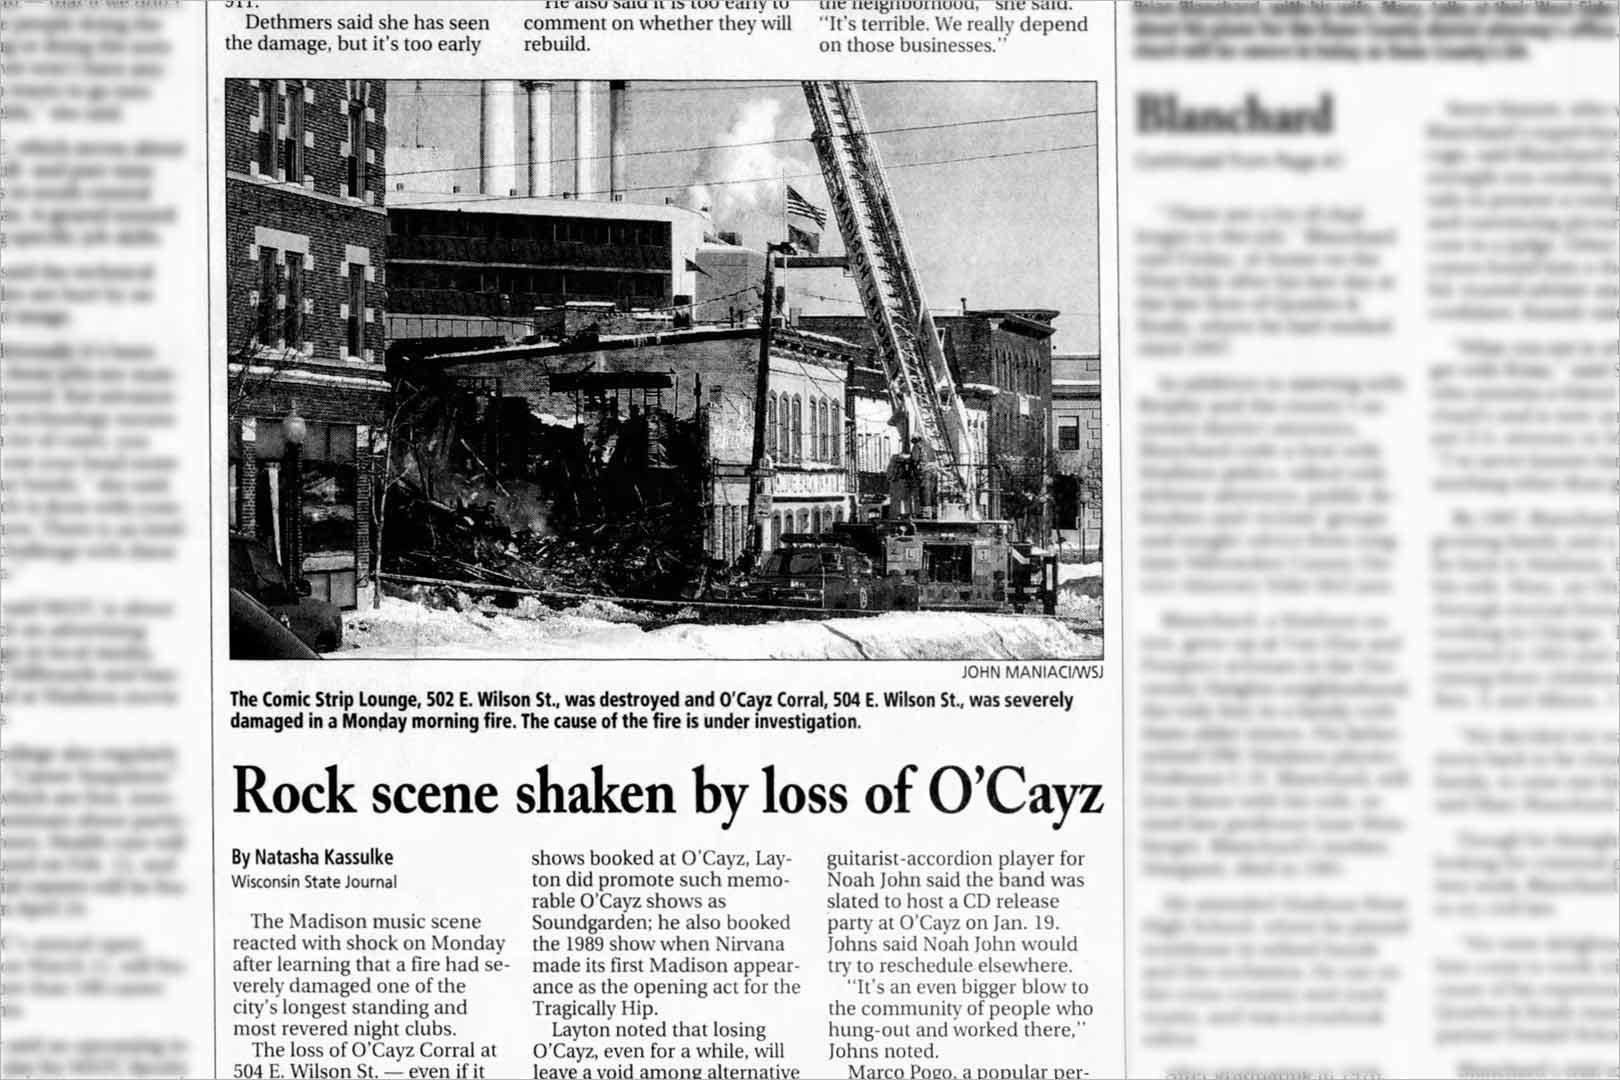 Rock scene shaken by loss of O'Cayz